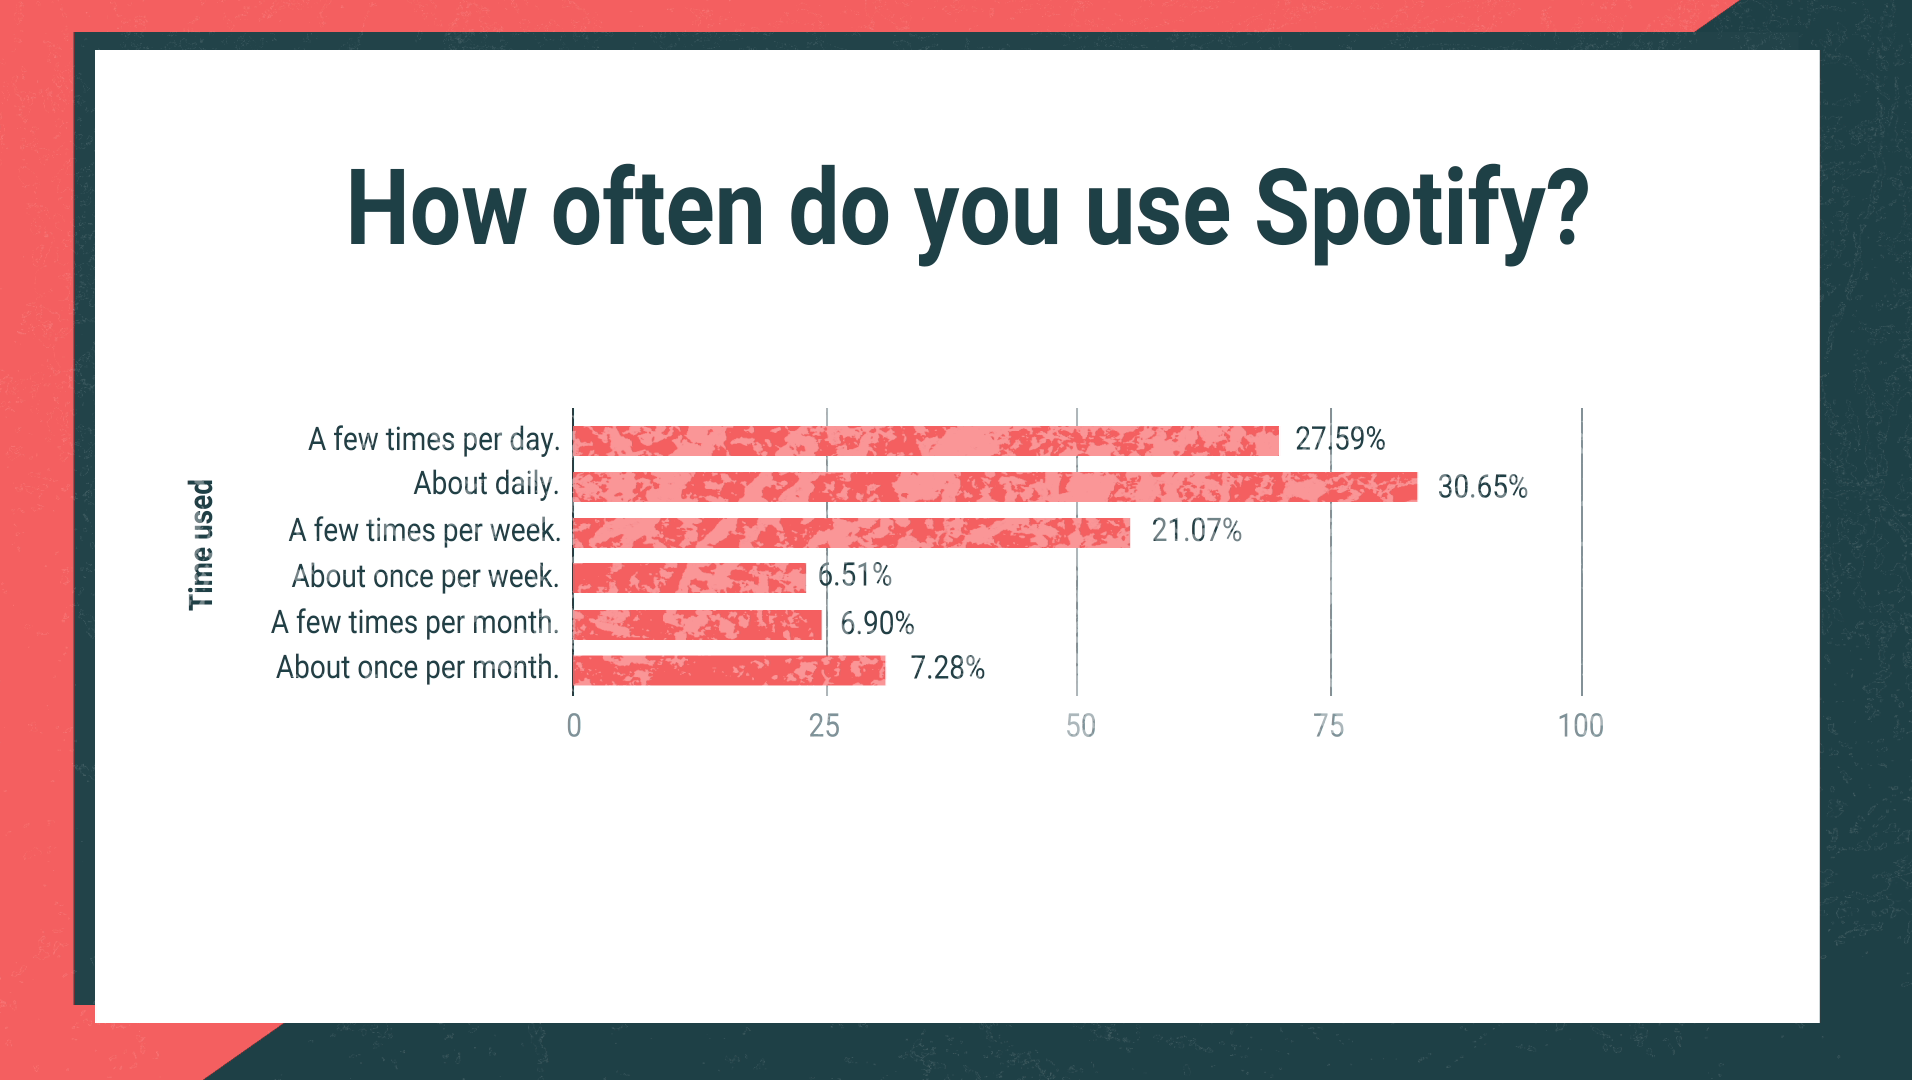 How often do you use Spotify?